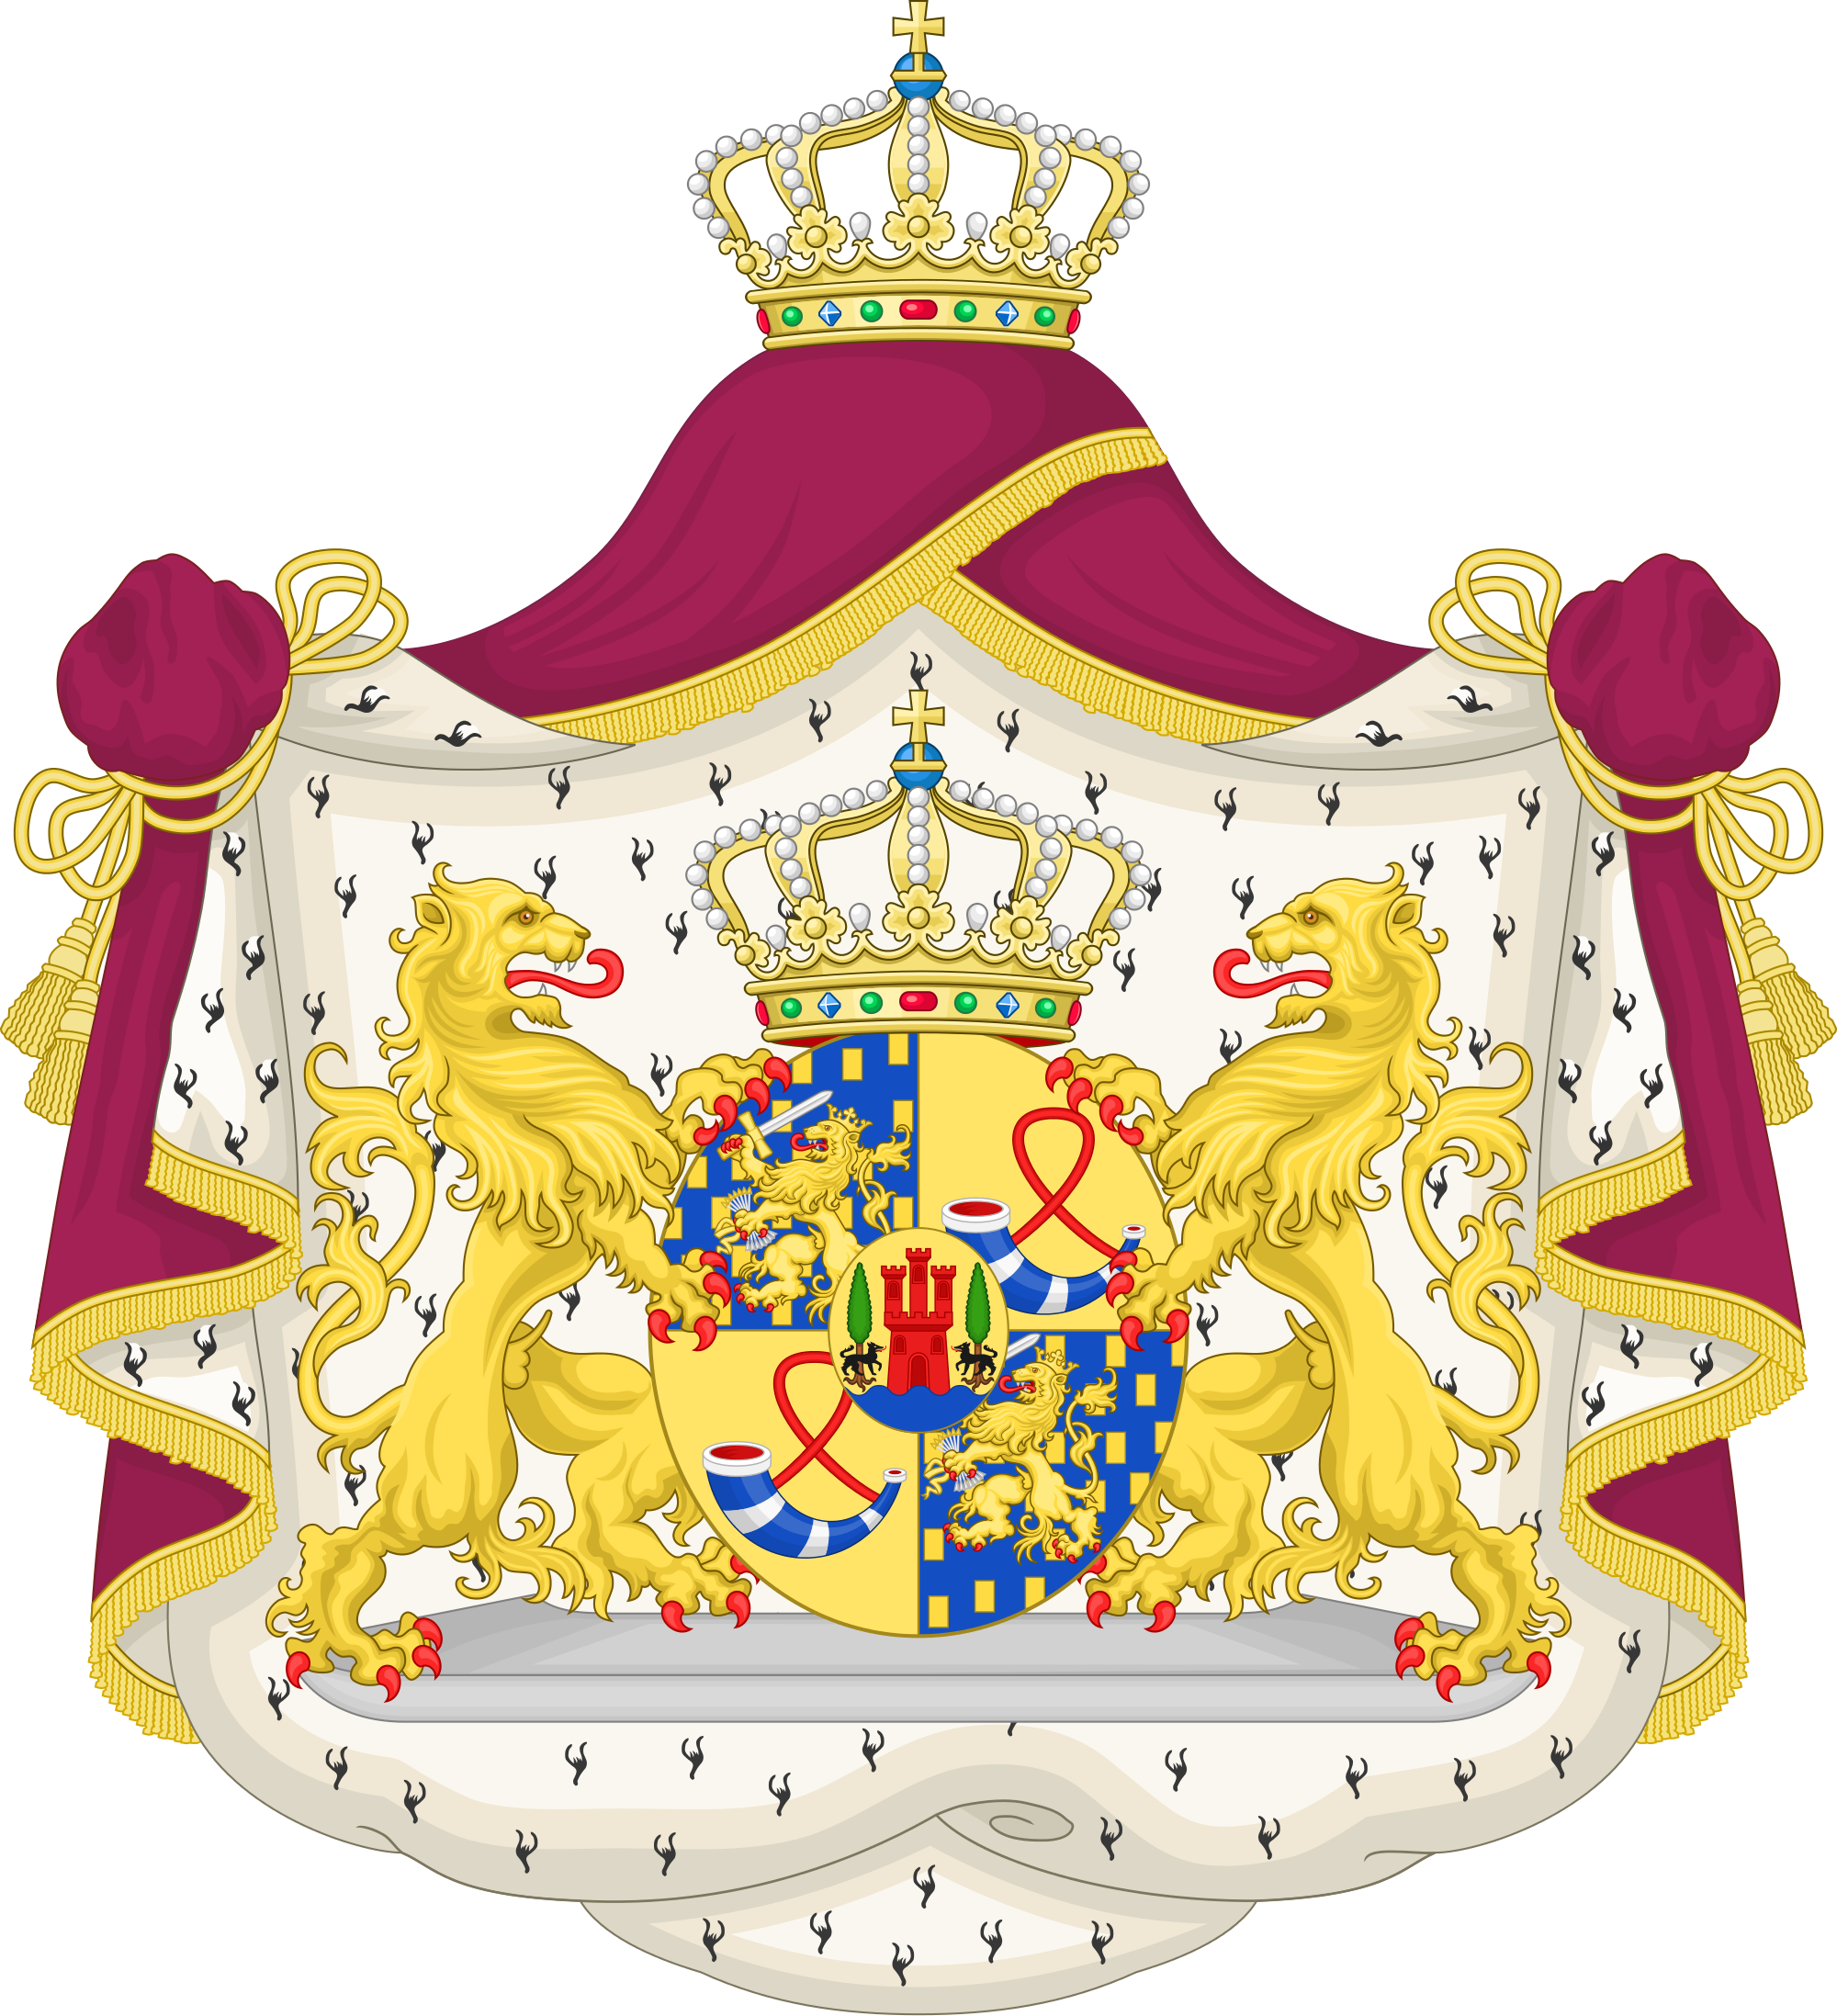 File:Coat of Arms of Maxima, Queen of the Netherlands.svg.